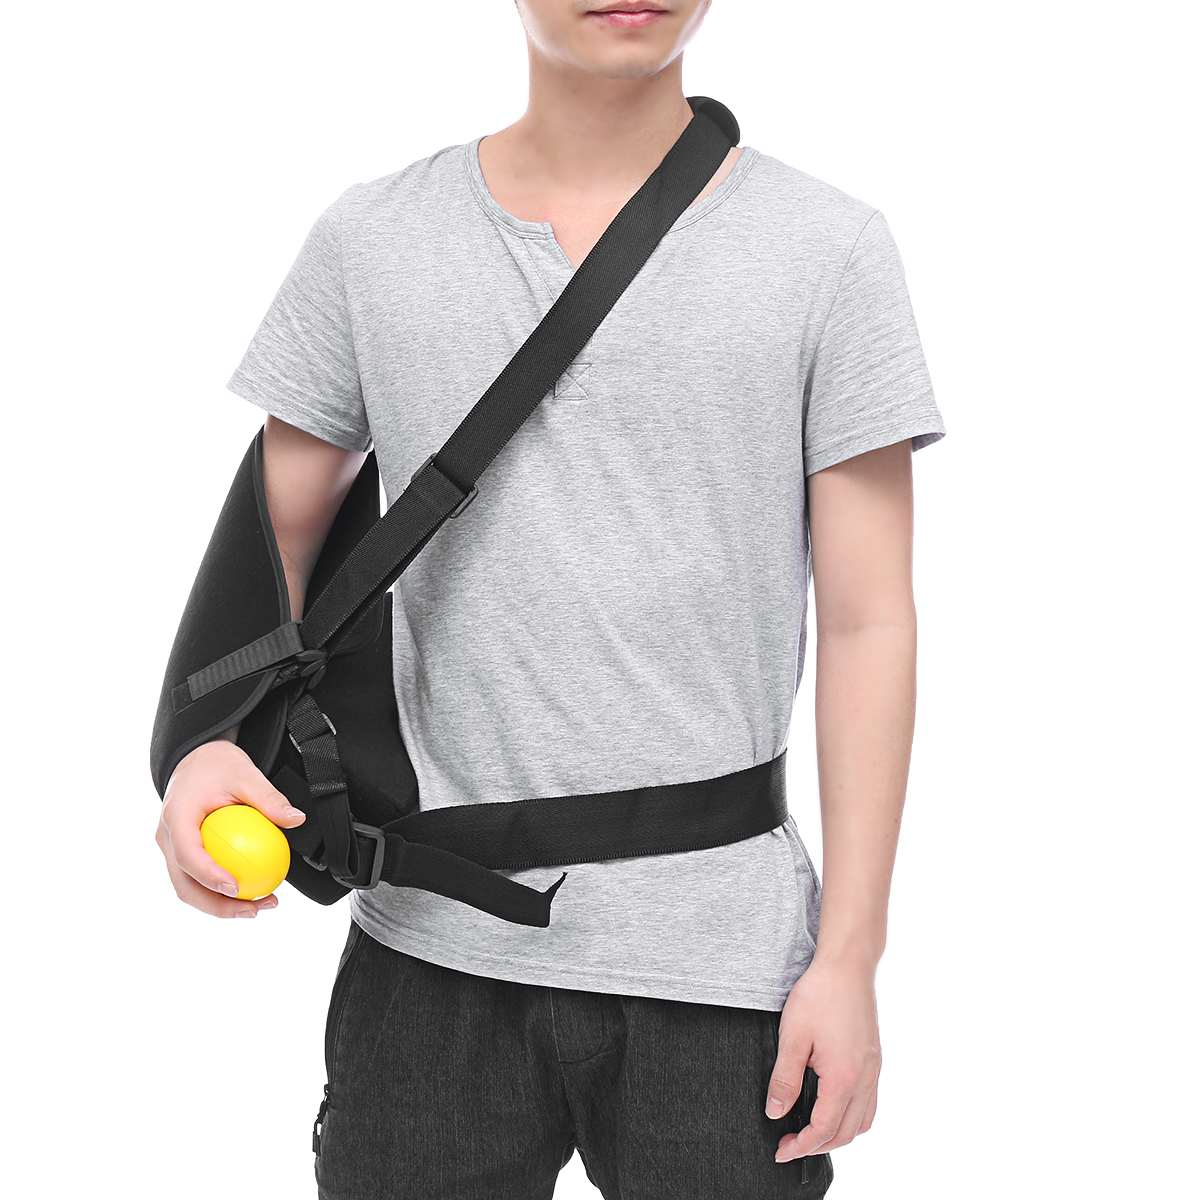 Breathable Adjustable Arm Support Outdoor Traveling Sling Brace Support with Rehabilitation Ball Personal Health Care Protector